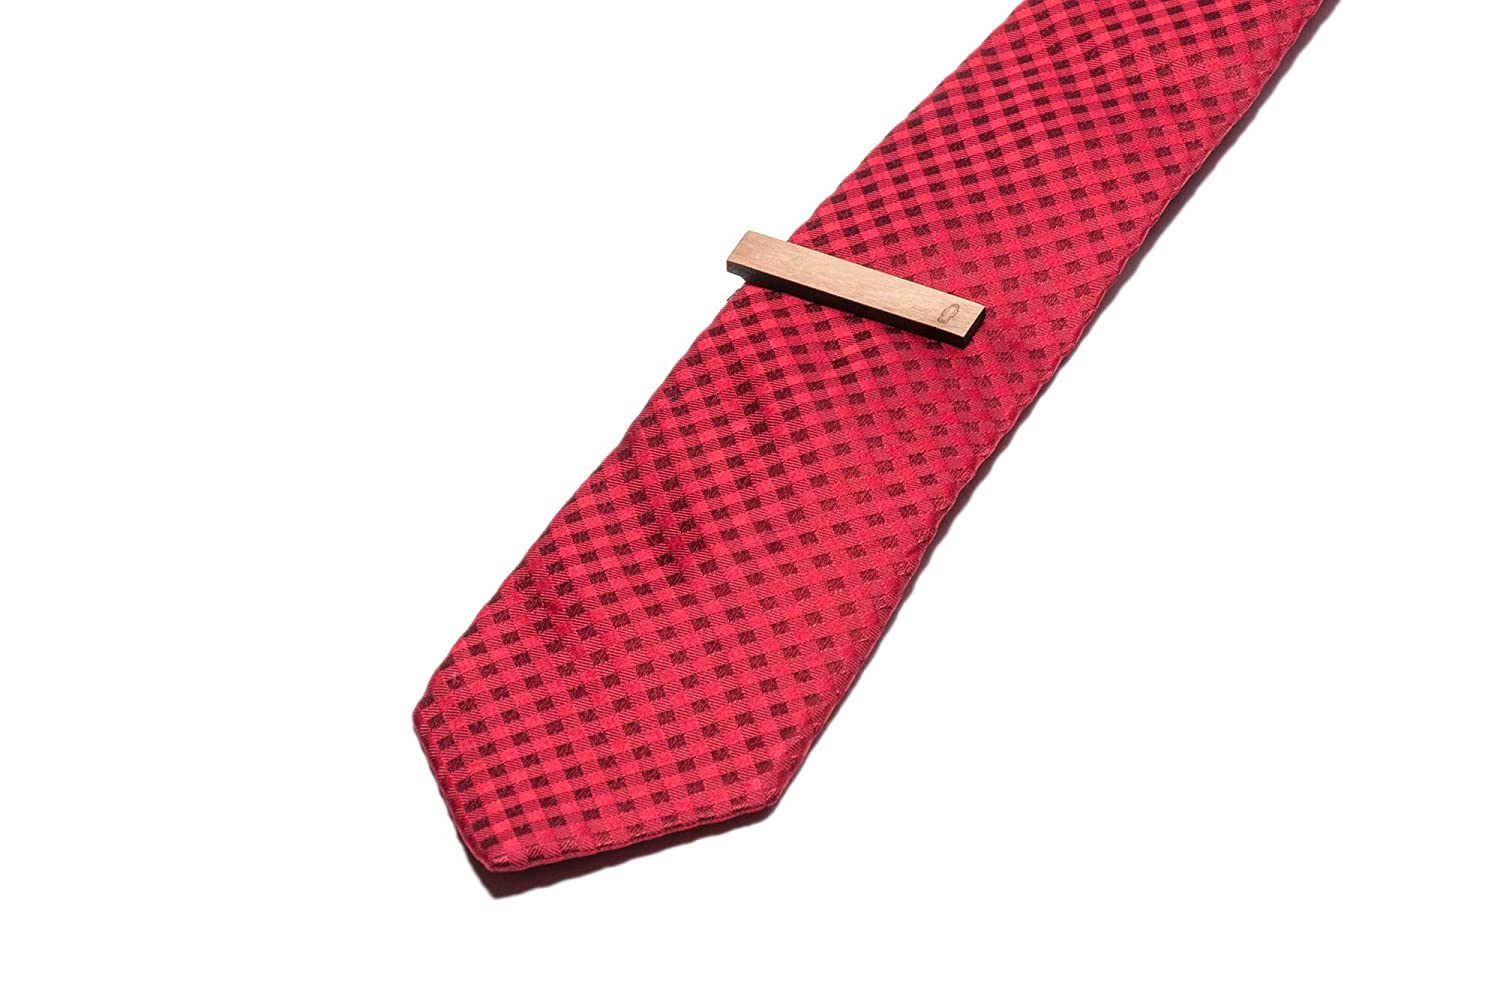 Cherry Wood Tie Bar Engraved in The USA Wooden Accessories Company Wooden Tie Clips with Laser Engraved Pad Design